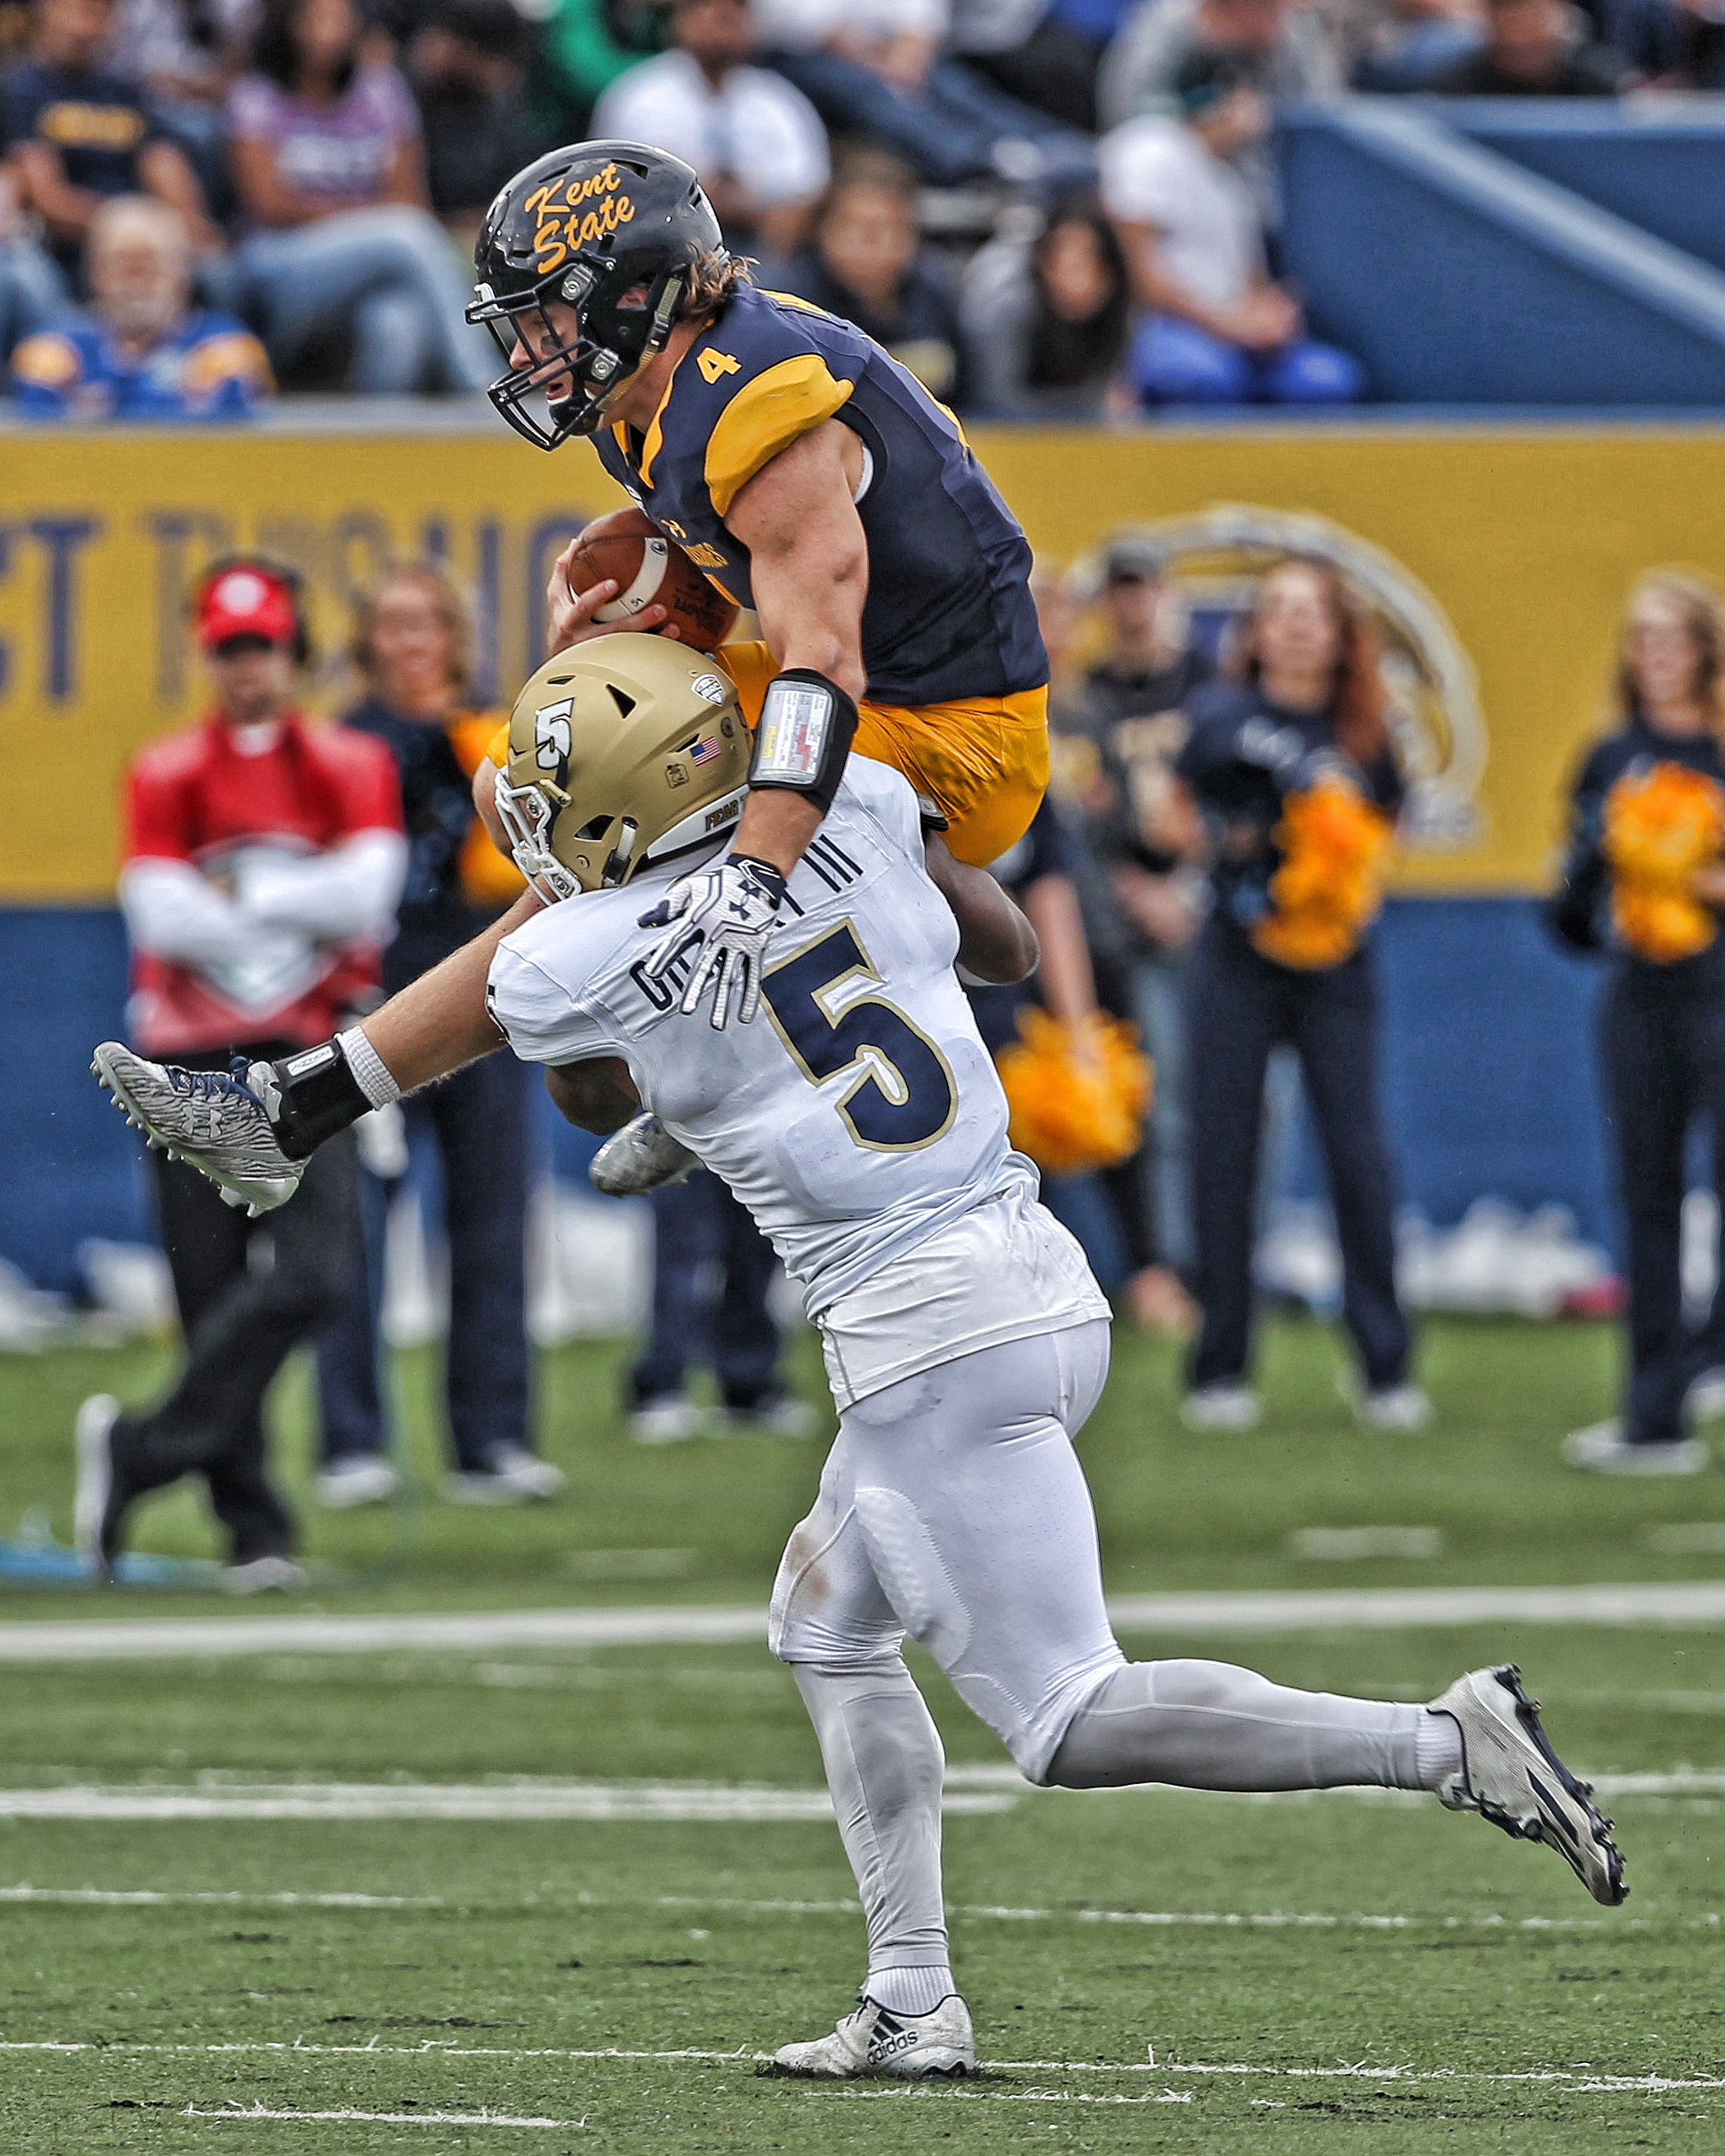 Kent stand in QB Nick Holley attempts to get by Akron's Ulysses Gilbert III.